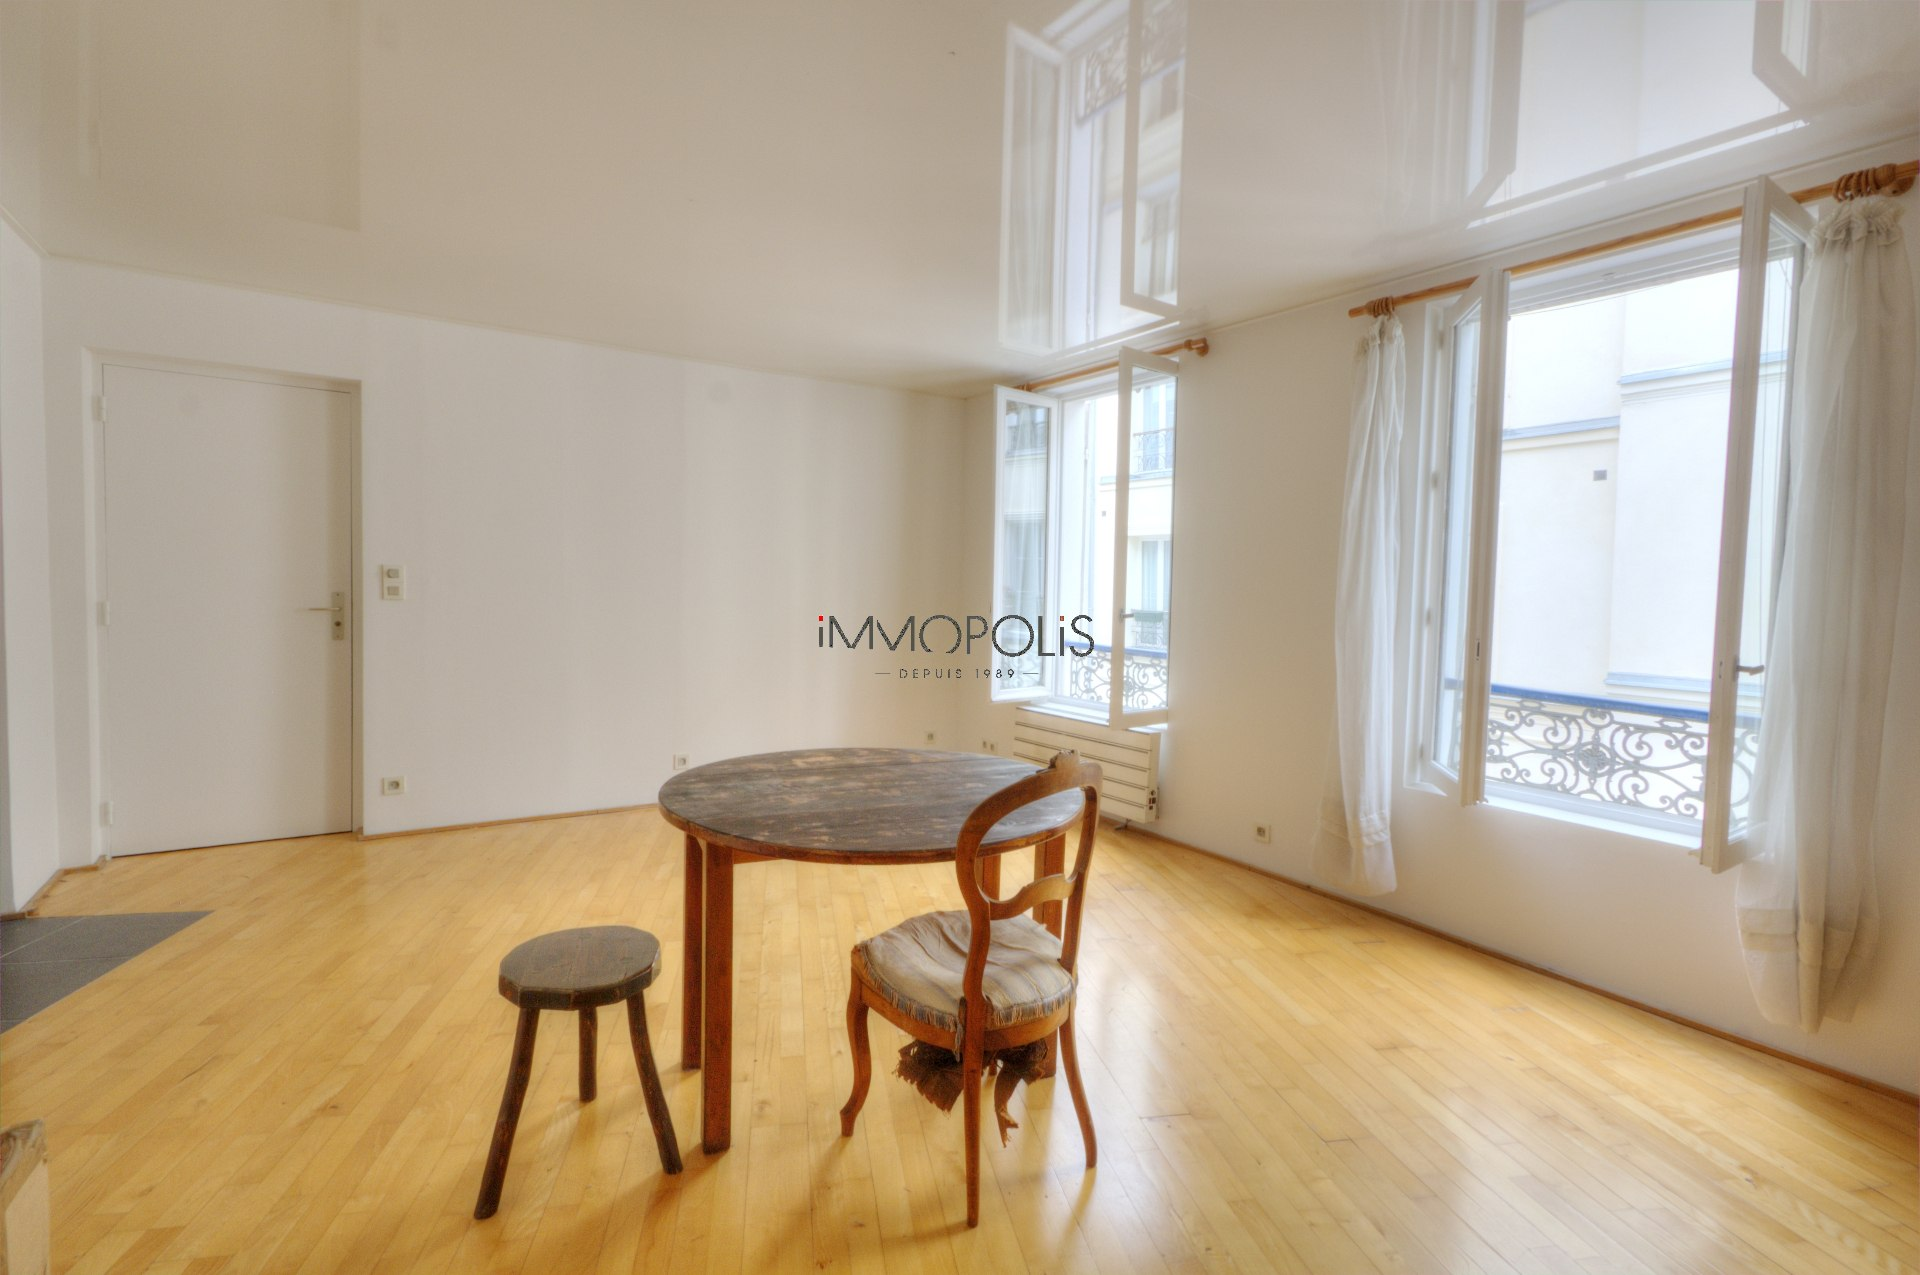 In the heart of the abbesses, rue Berthe, beautiful 2 rooms with perfect, in good condition, crossing on quiet street and open courtyard! 2